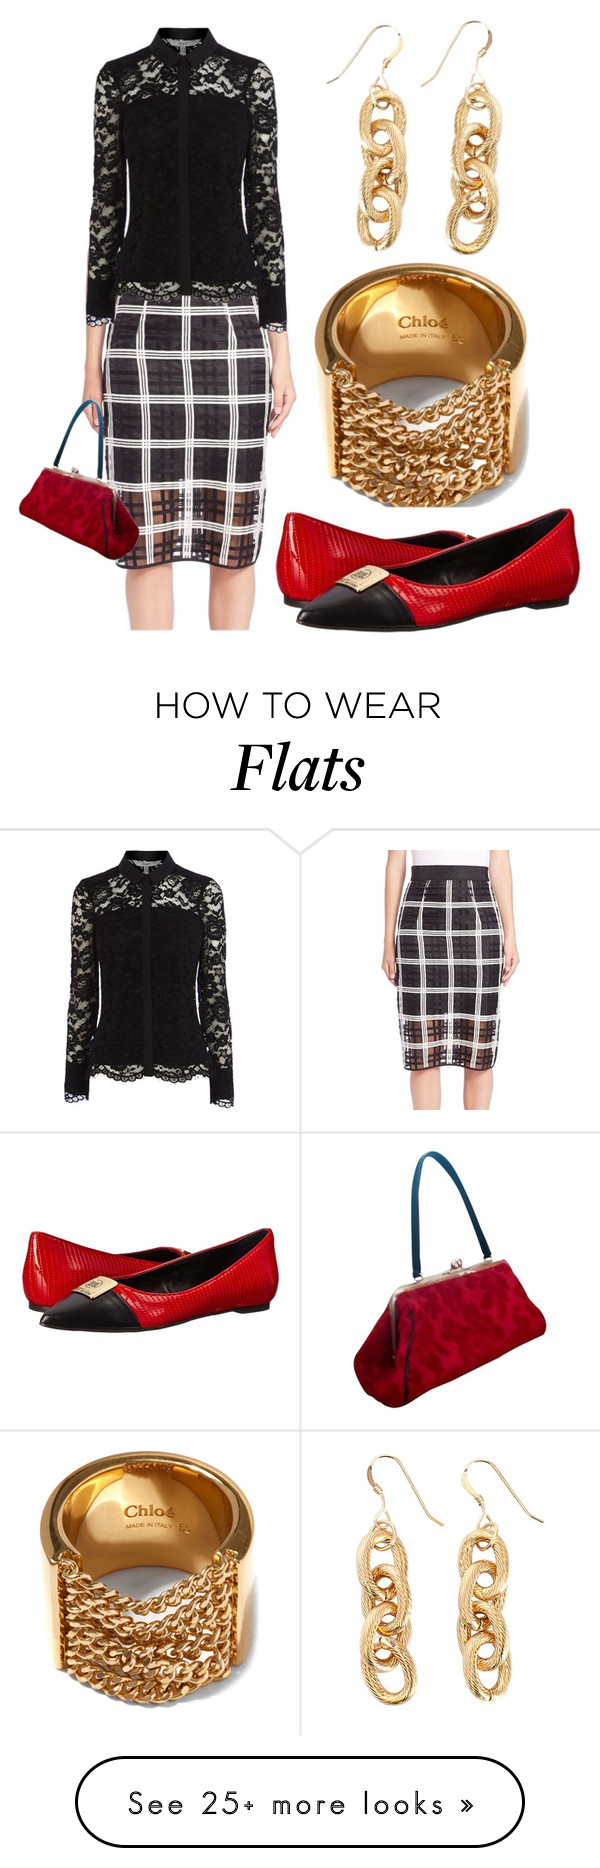 """Back on the Chain Gang"" by pampire on Polyvore featuring Milly, Chloé, Glenda Gies and Love Moschino"